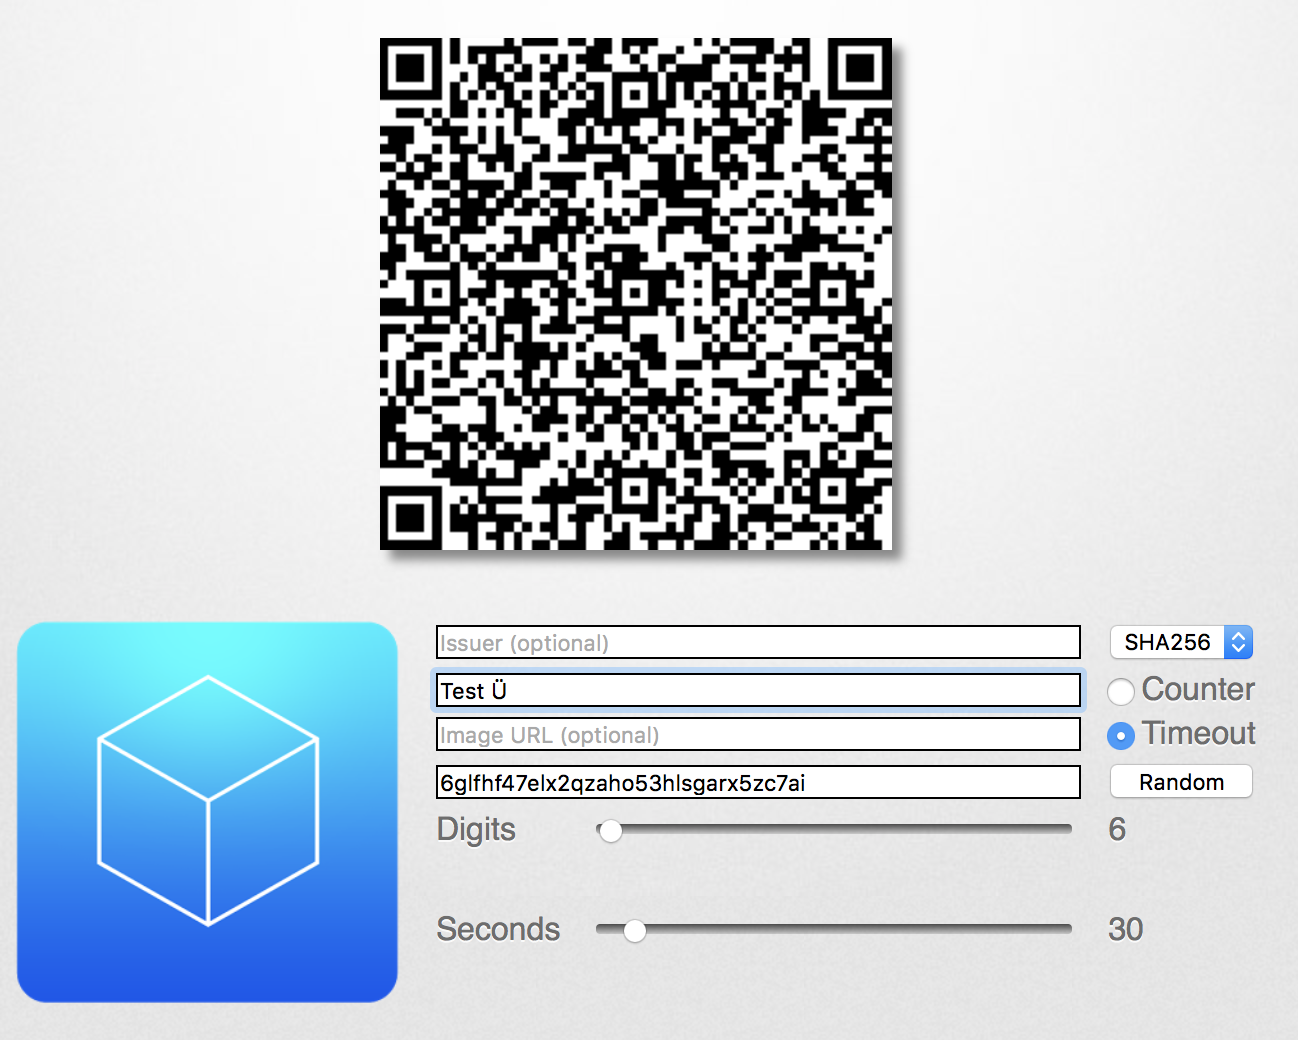 Free OTP crashes when importing QR with special characters in